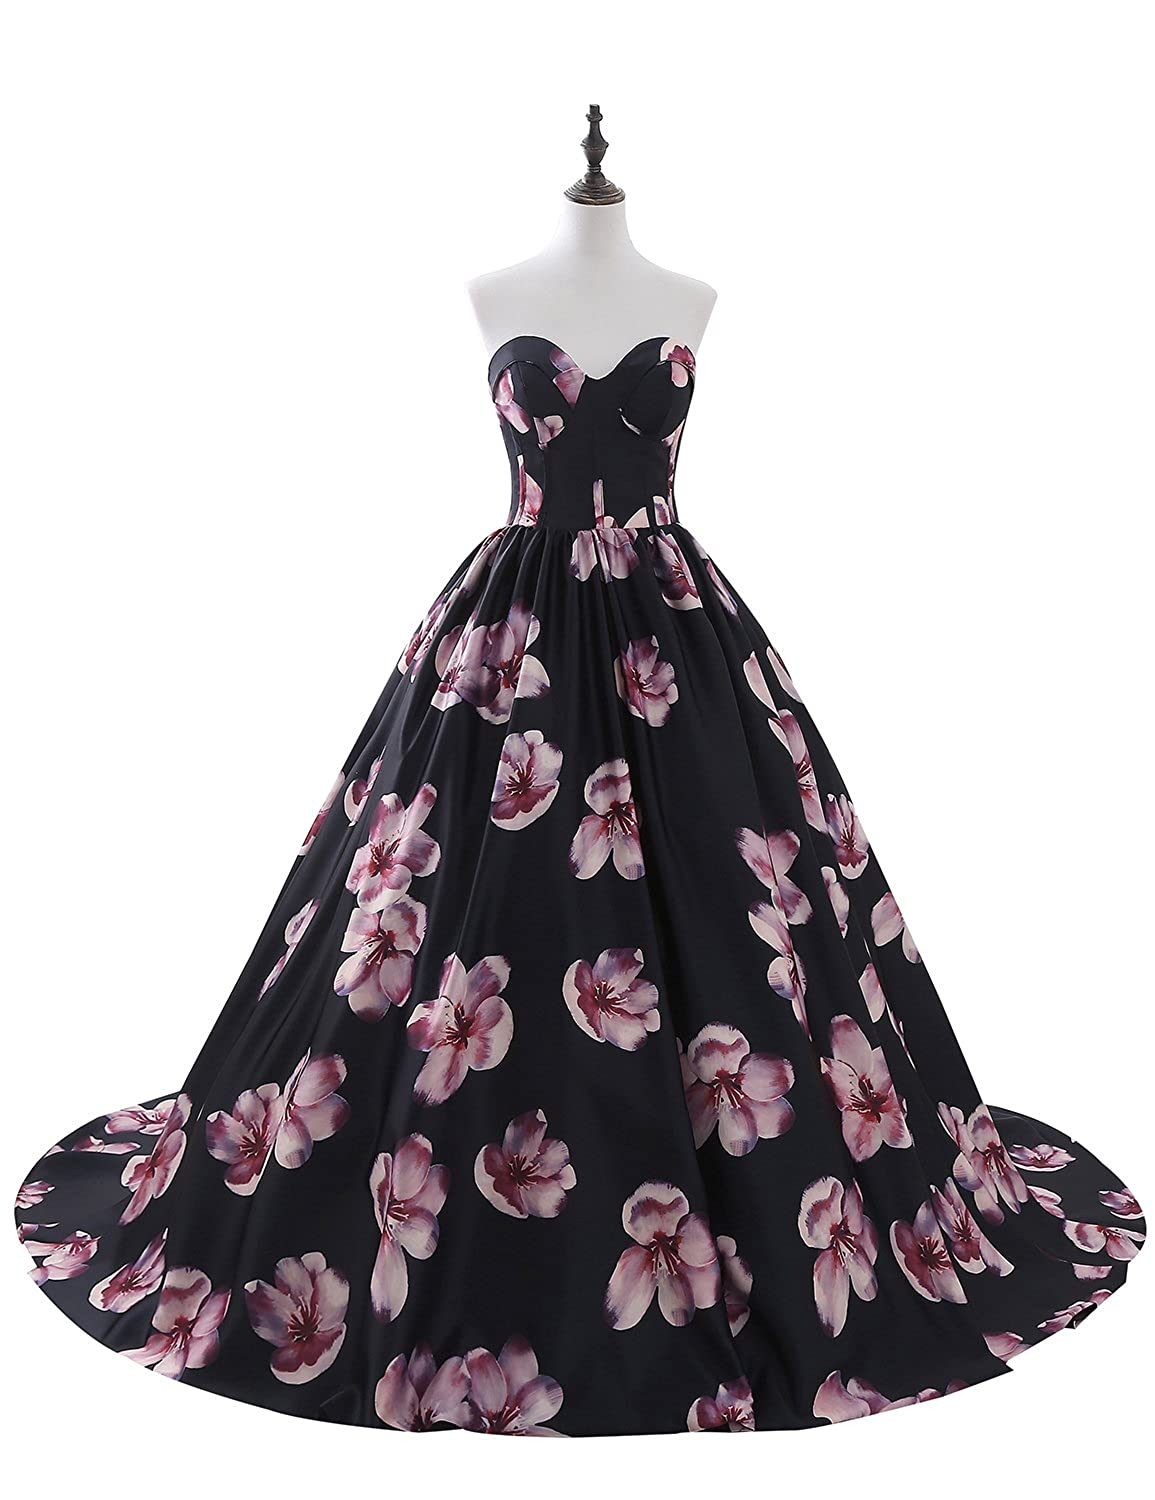 Black YSMei Women's Long Strapless Dress Girl's Floral Print Satin Evening Gown ON029